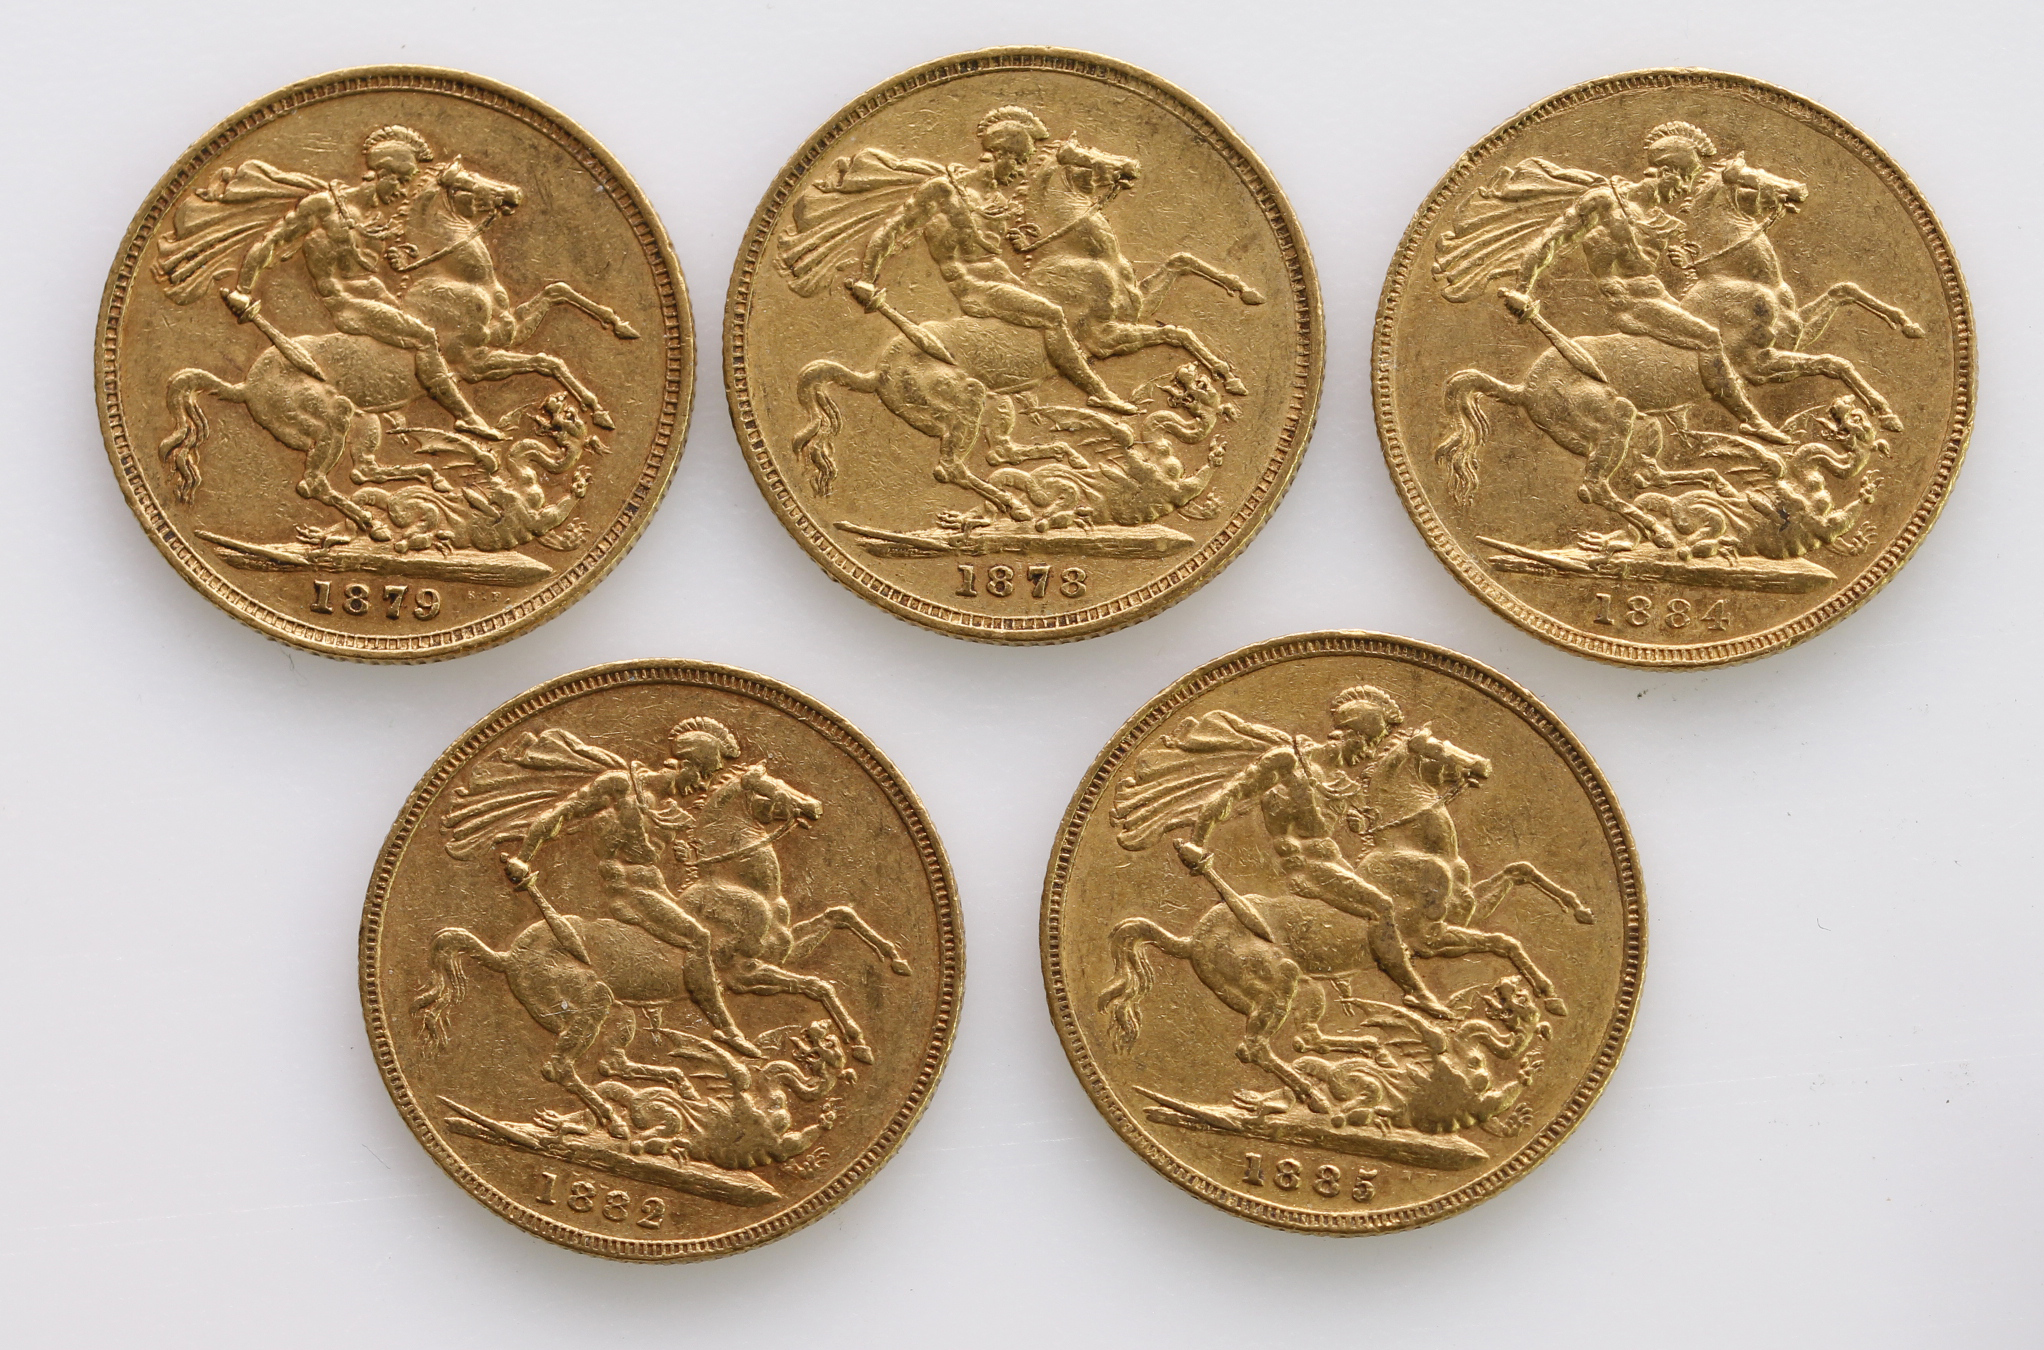 Sovereigns (5) All St George Melbourne Mint. 1878, 1879, 1882, 1884 & 1885. VF or better - Image 2 of 2